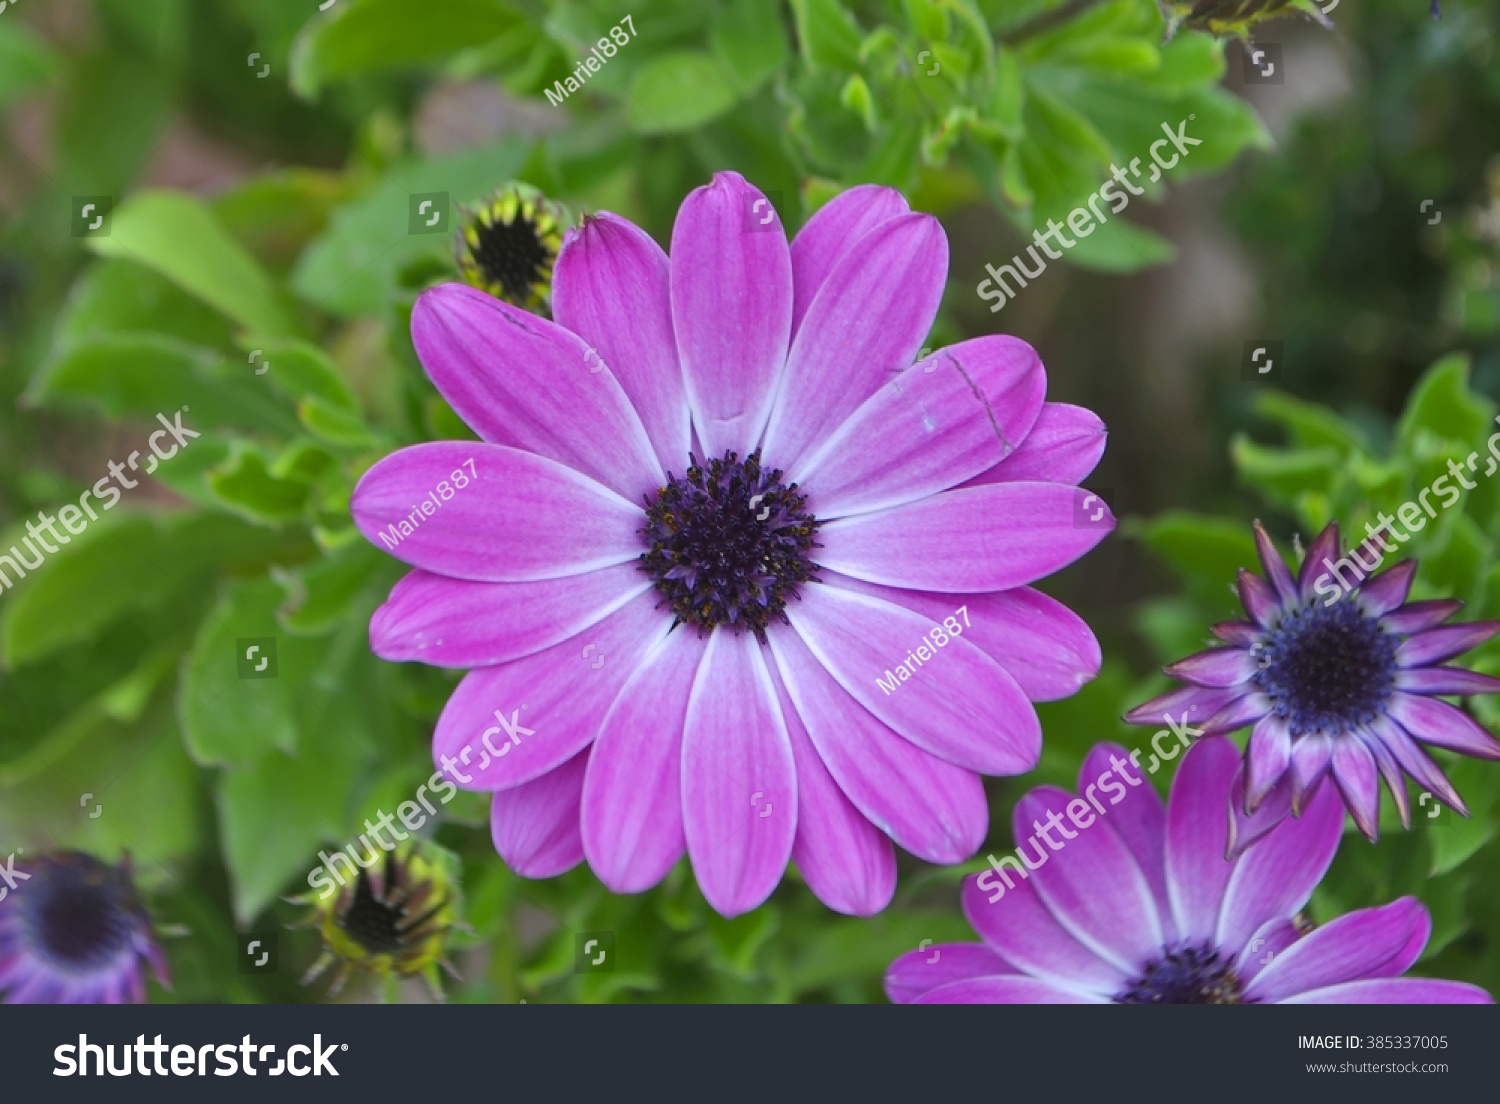 Some purple daisy flowers in the garden ez canvas id 385337005 izmirmasajfo